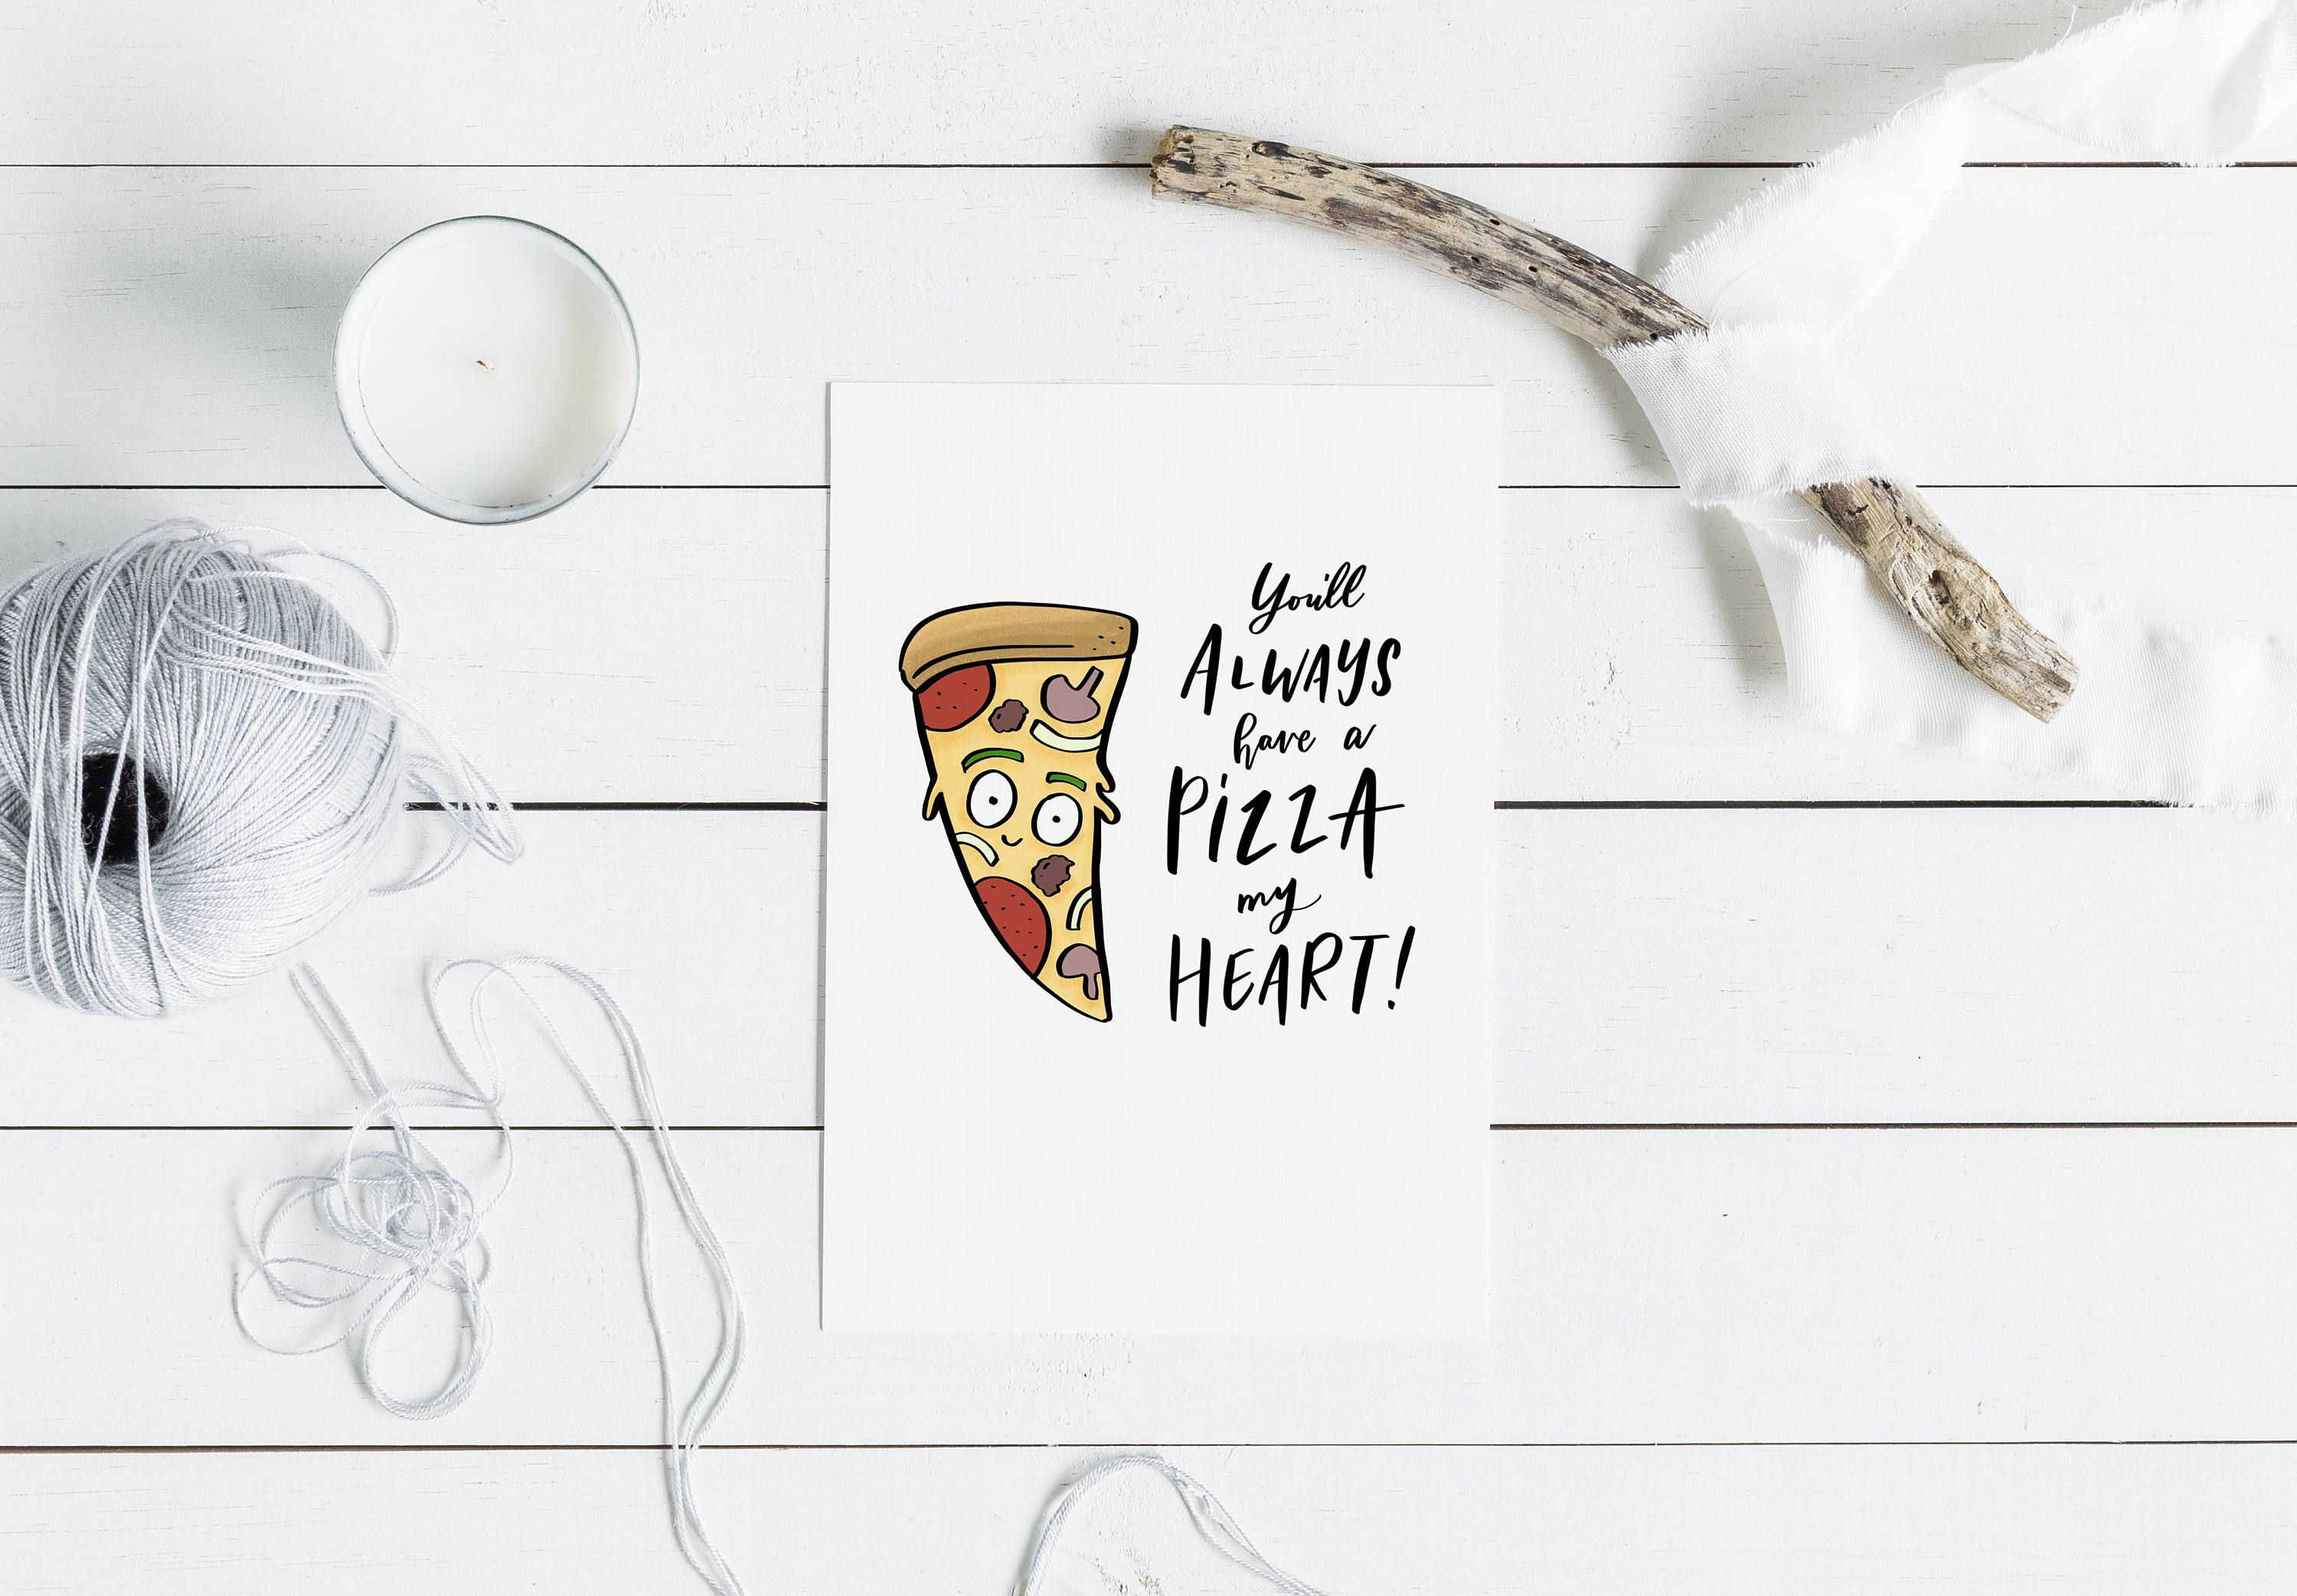 Pin by adventure of letters on greeting cards adventure of letters poly bags inkjet printer hand lettering greeting cards pizzas encouragement pc letters letter m4hsunfo